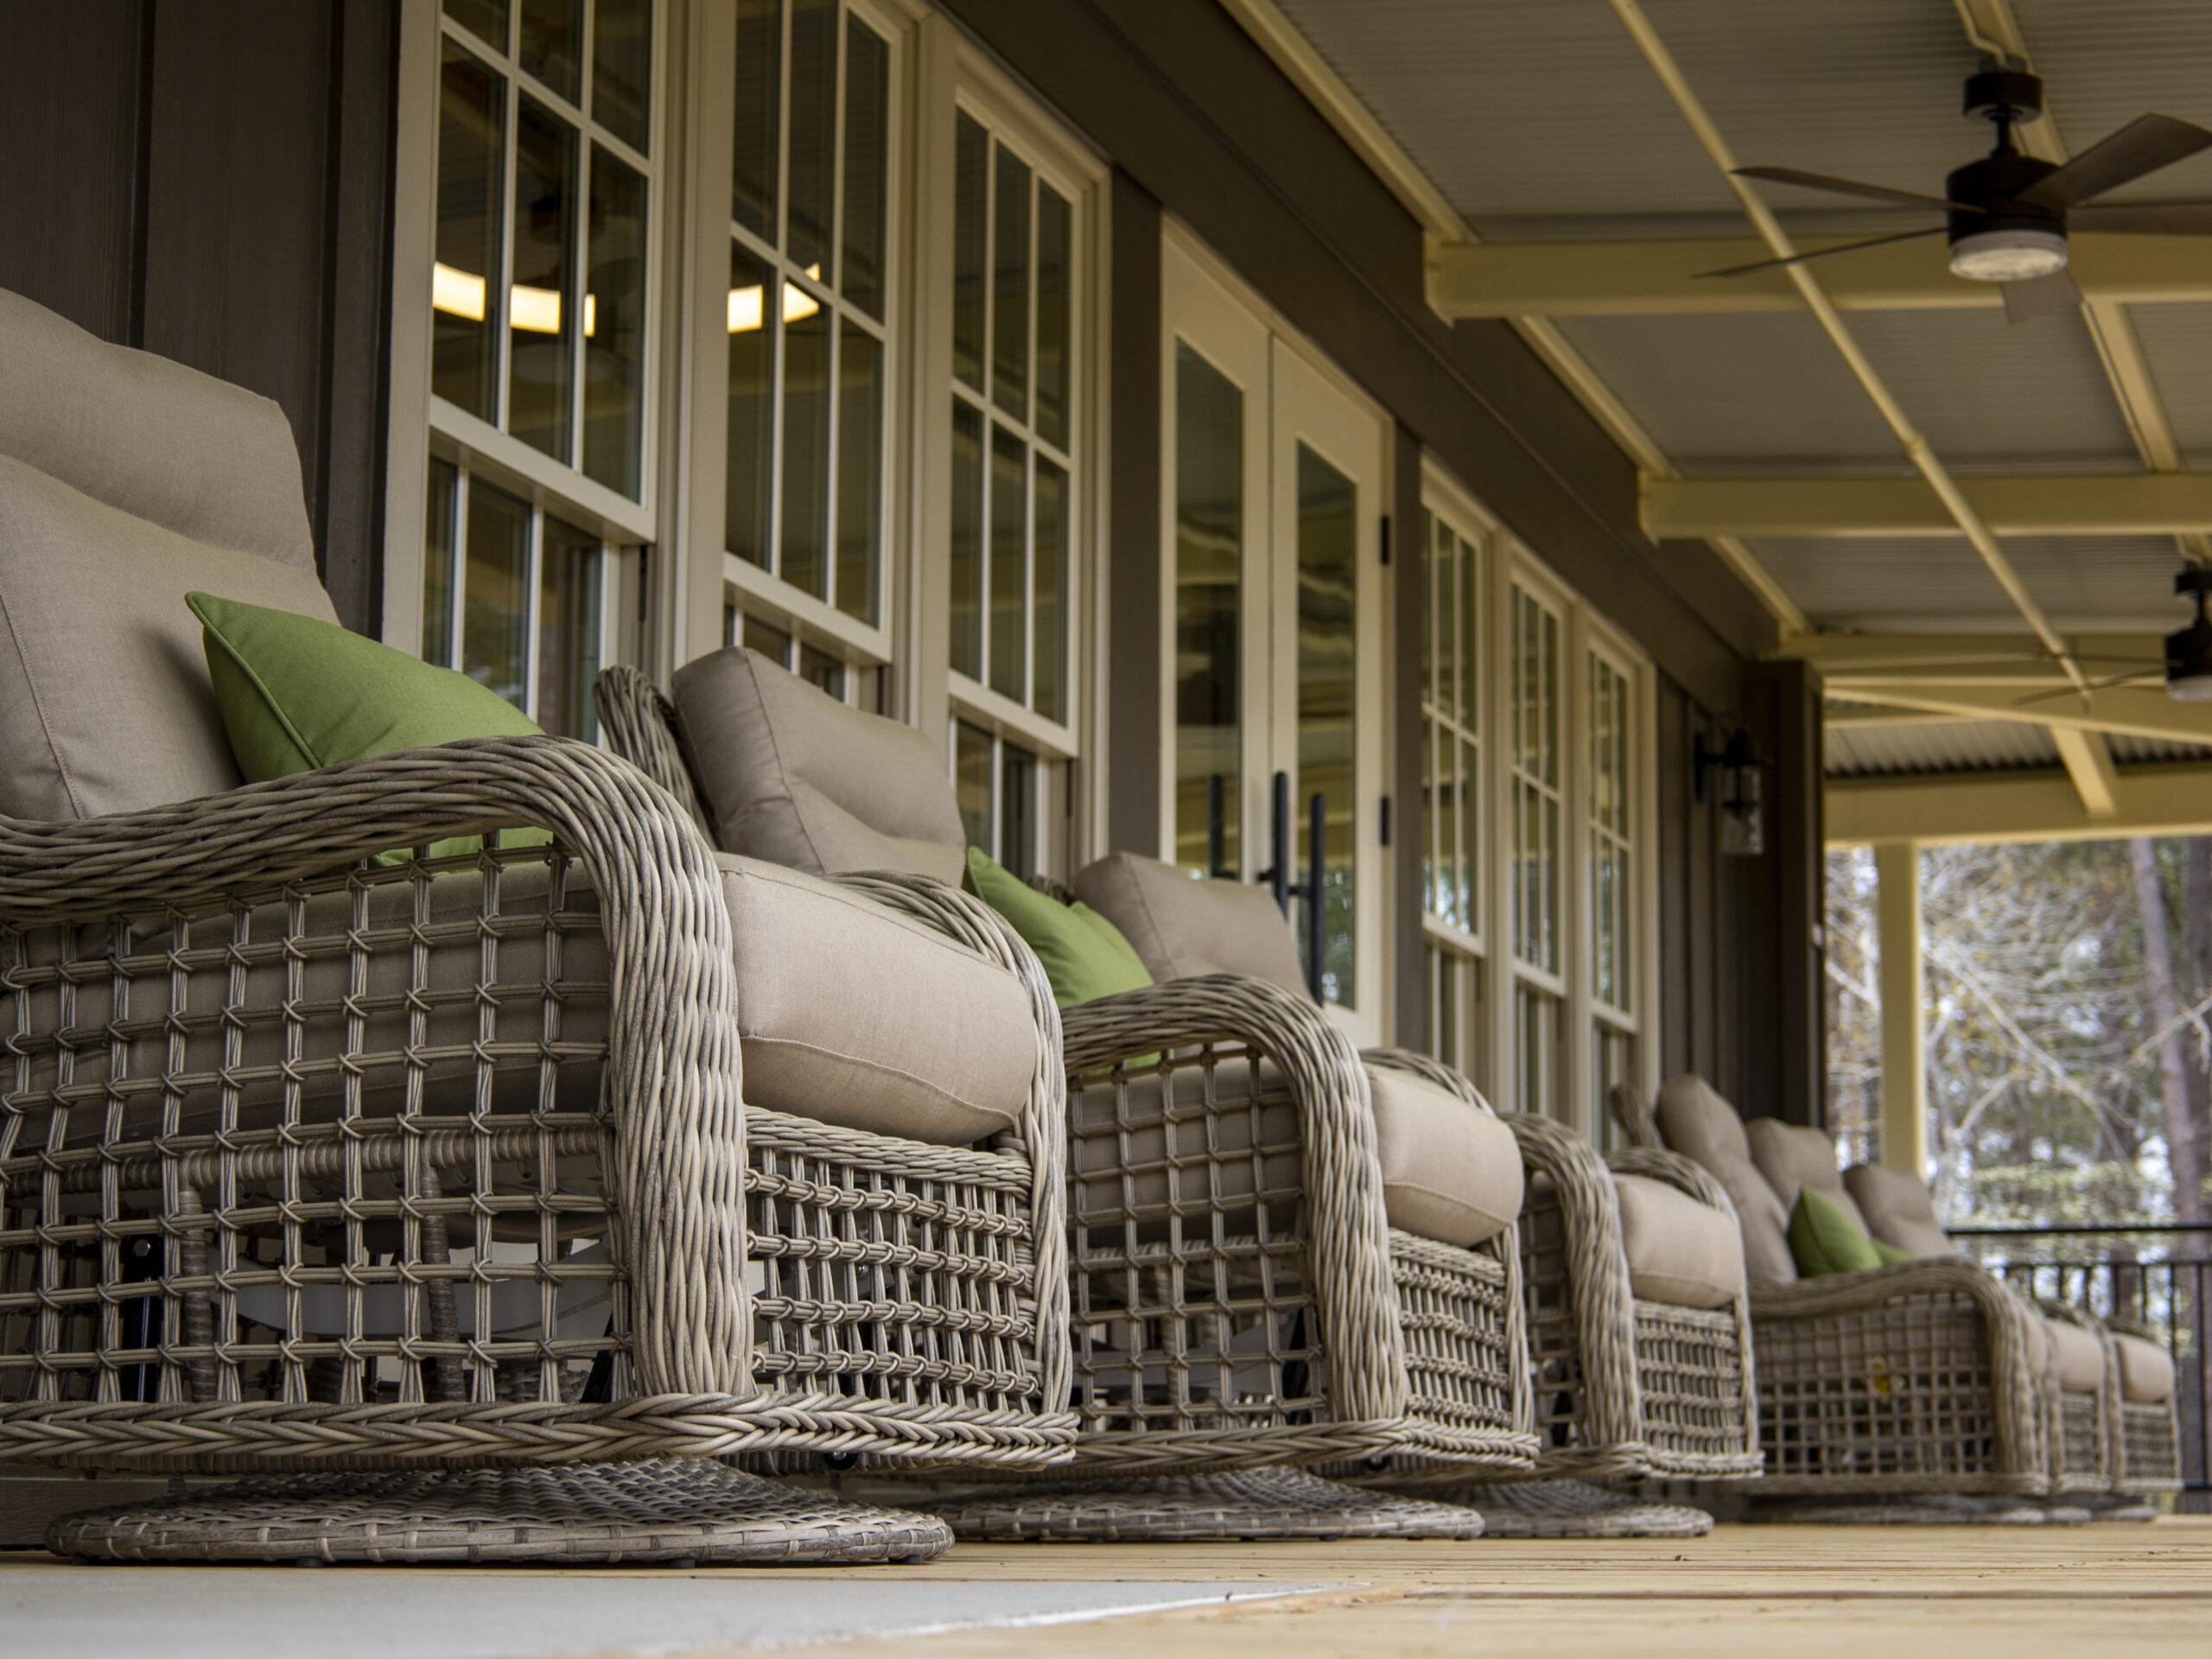 wicker chairs on the porch